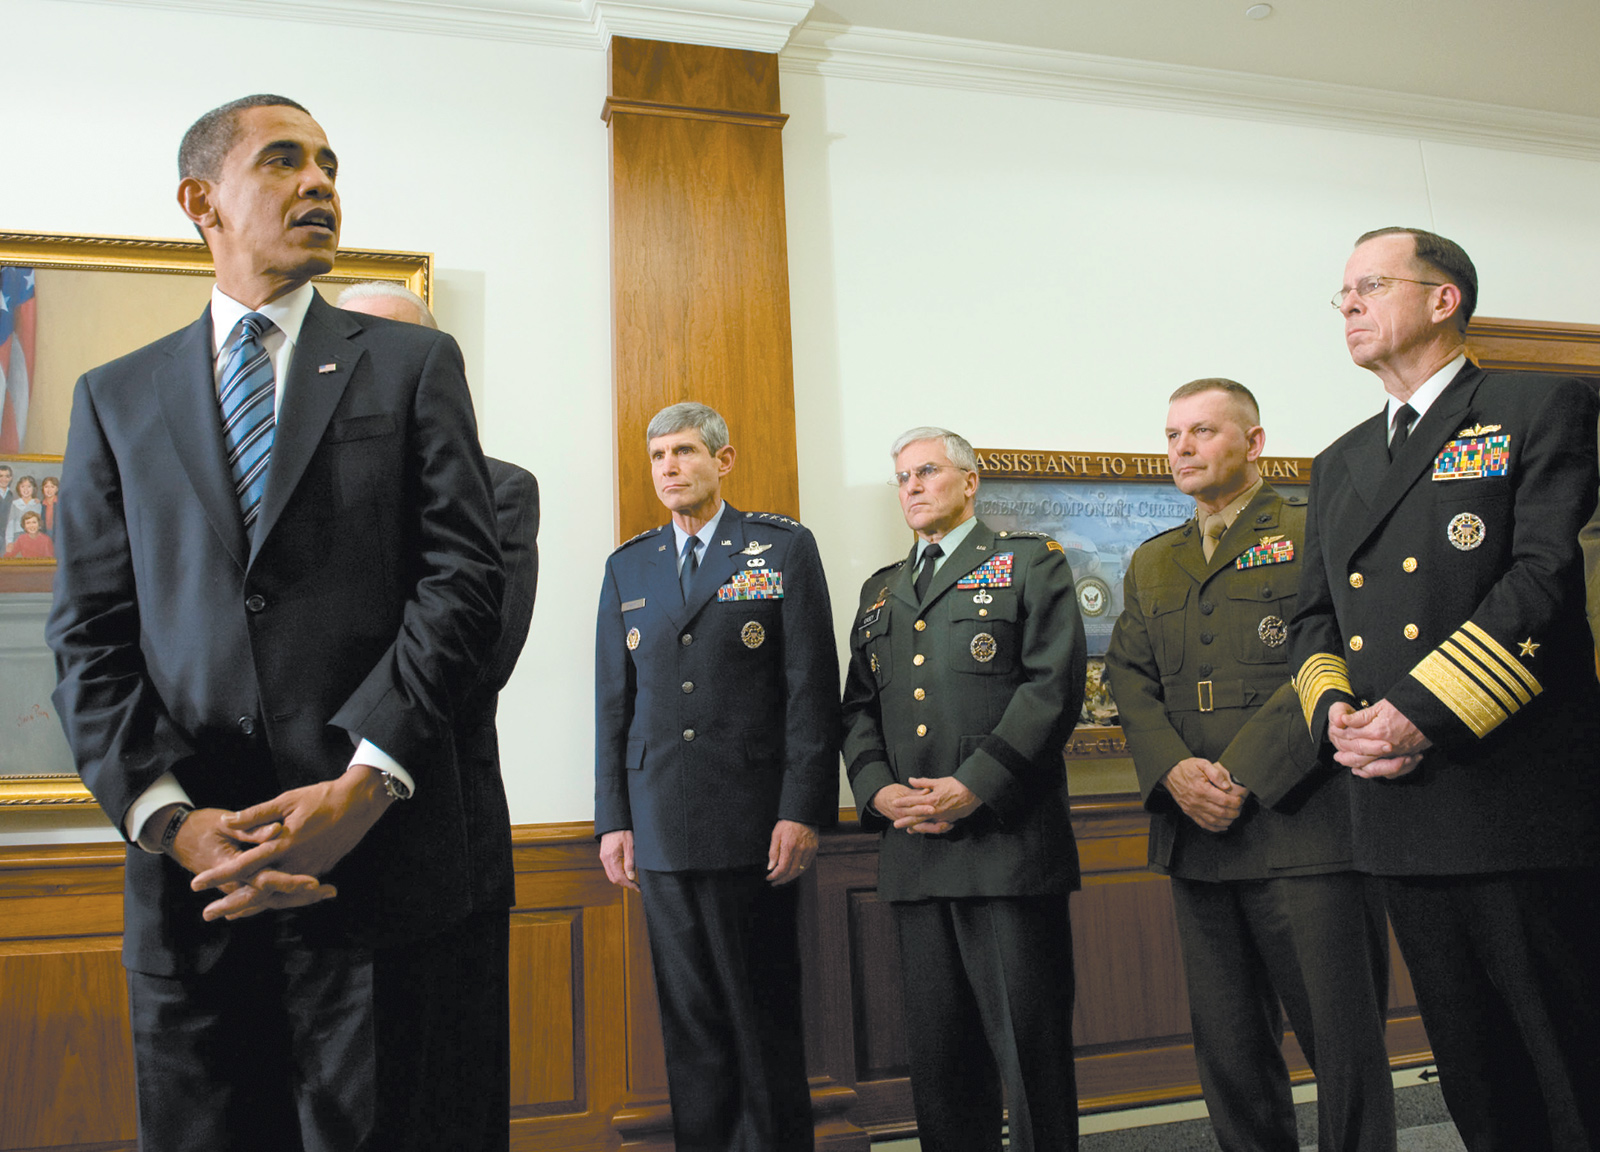 President Obama on his first visit to the Pentagon as commander in chief, January 2009. With him are, from left, Air Force Chief of Staff Norton Schwartz, Army Chief of Staff George Casey, Joint Chiefs of Staff Vice Chairman James Cartwright, and Joint Chiefs of Staff Chairman Mike Mullen.